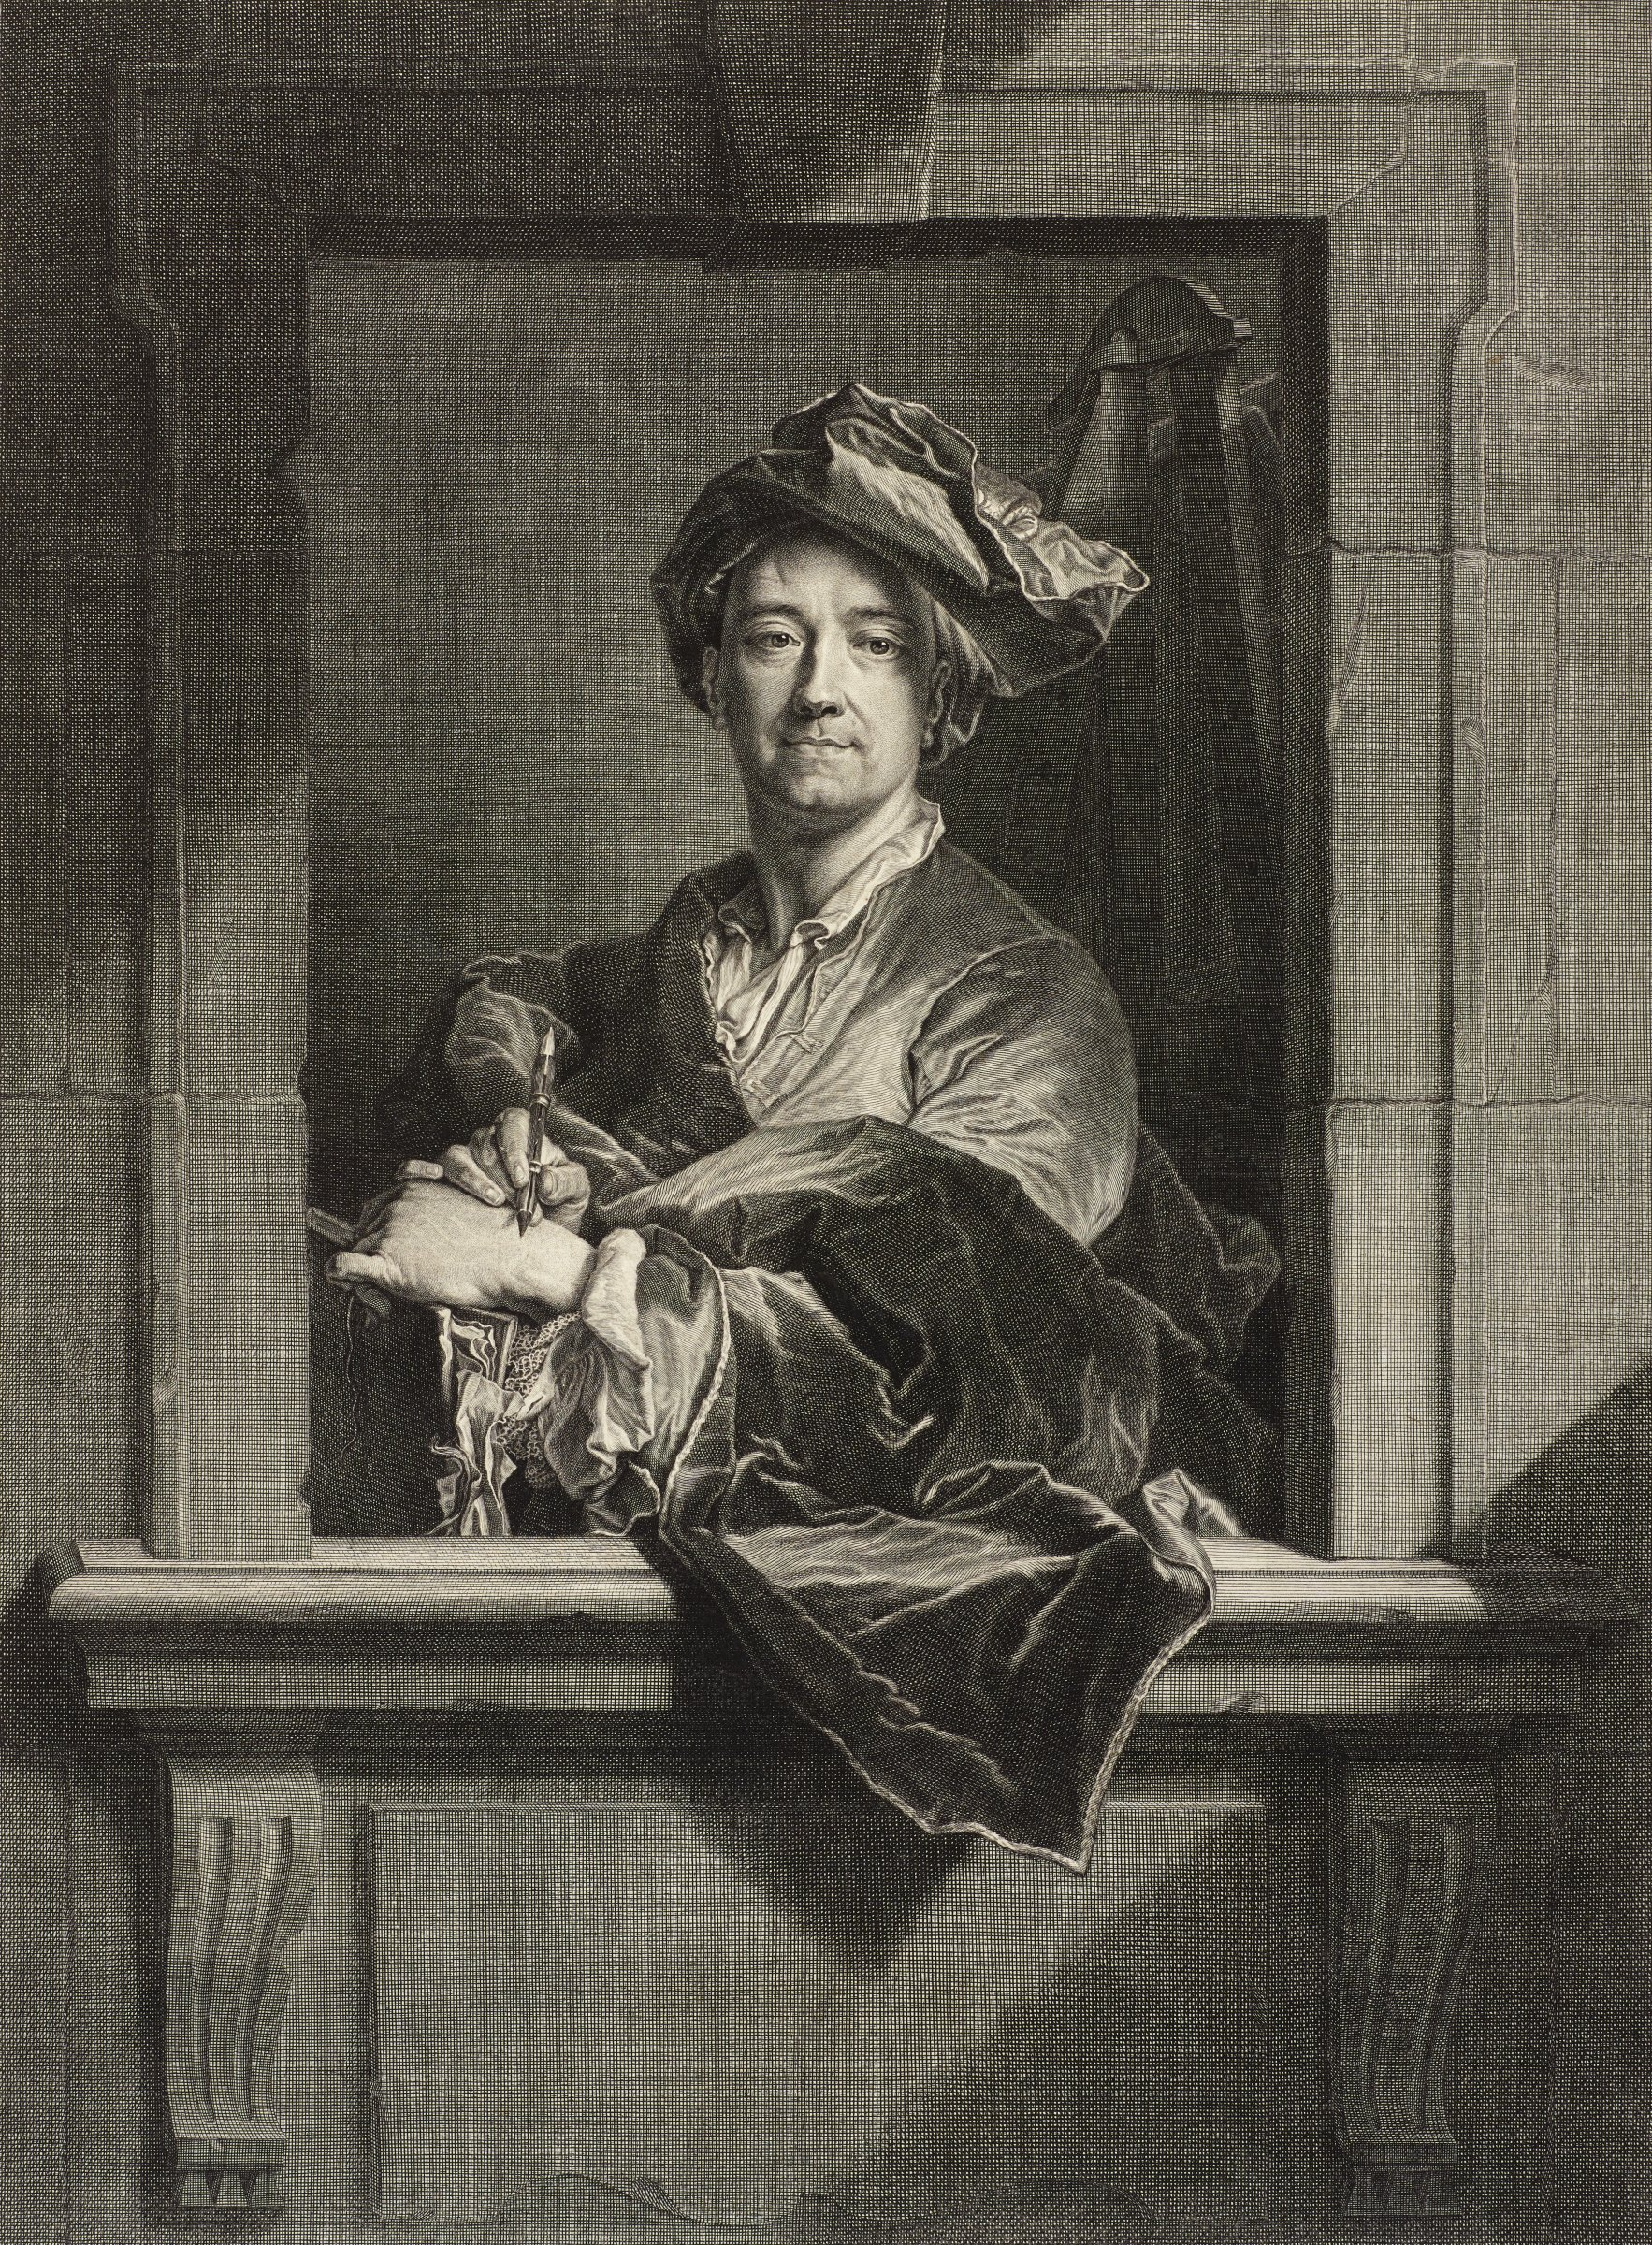 Half-length man seen through an architectural opening, his cloak spilling across the ledge and into the viewer's space. In his left hand is a portfolio with sheets of paper visible, while his right hand holds a stylus. He wears a typical painter's hat. The back of an easel is visible in the room behind the man.